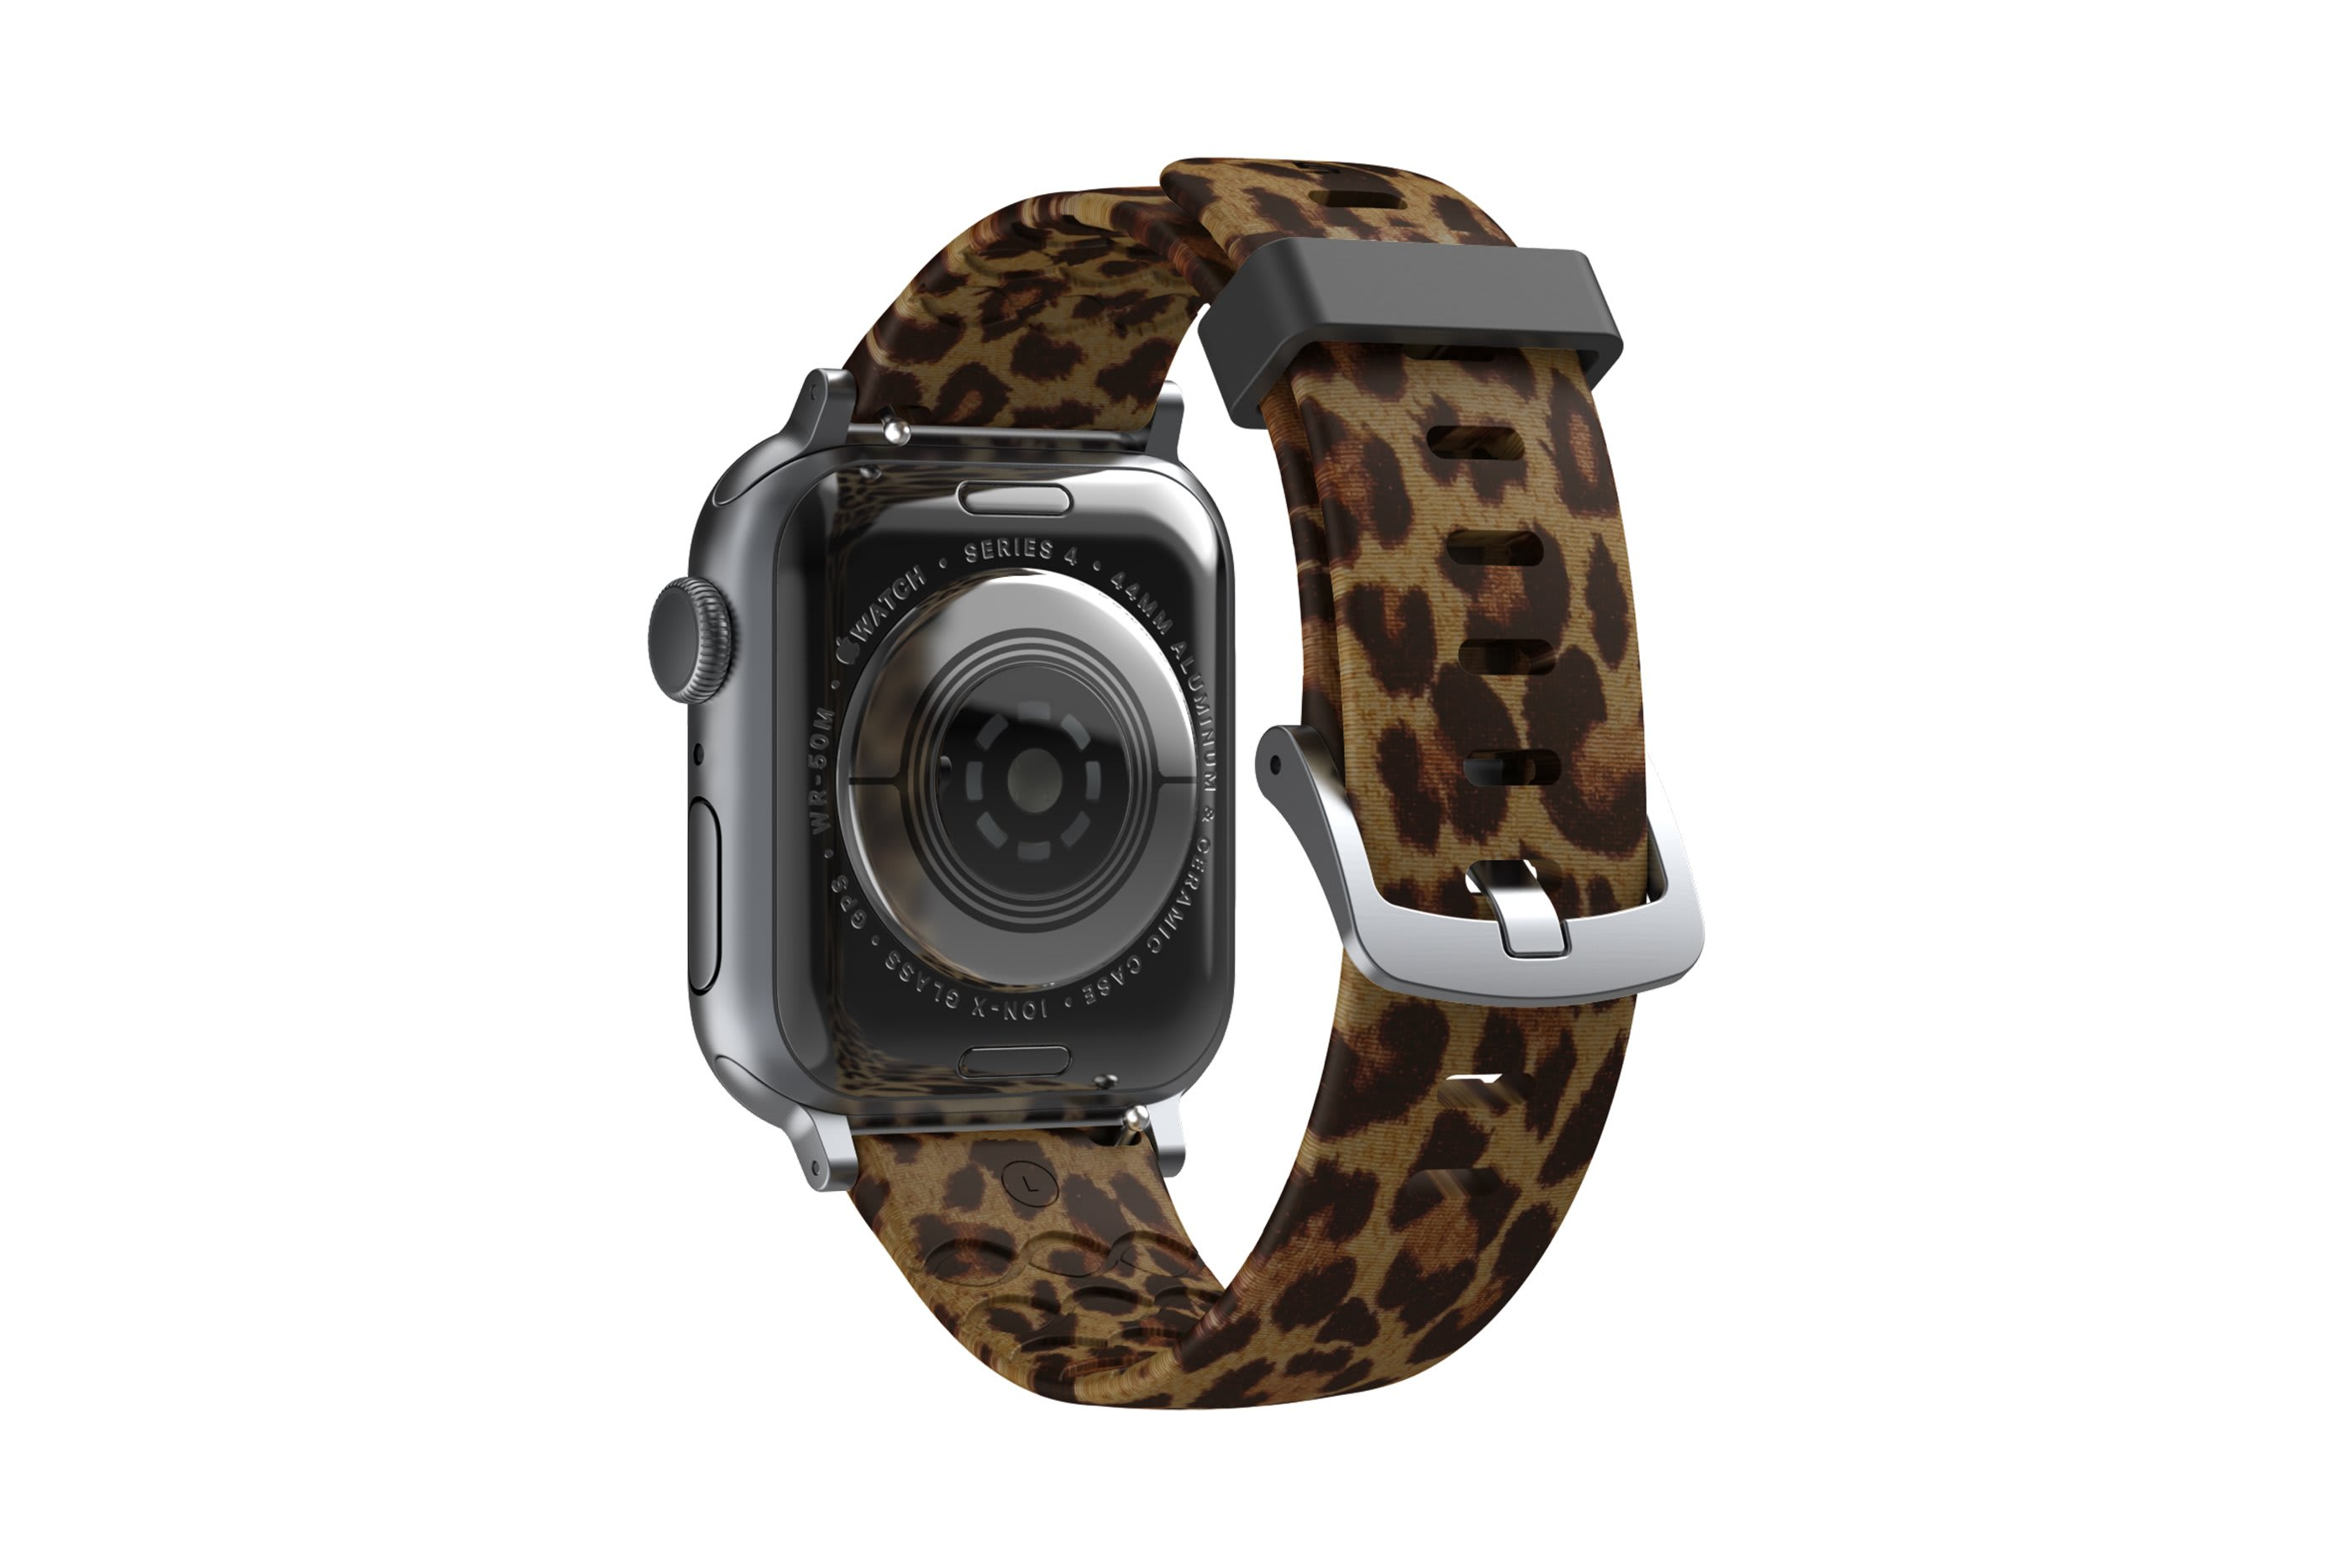 Leopard Apple Watch Band with Silver hardware viewed from rear